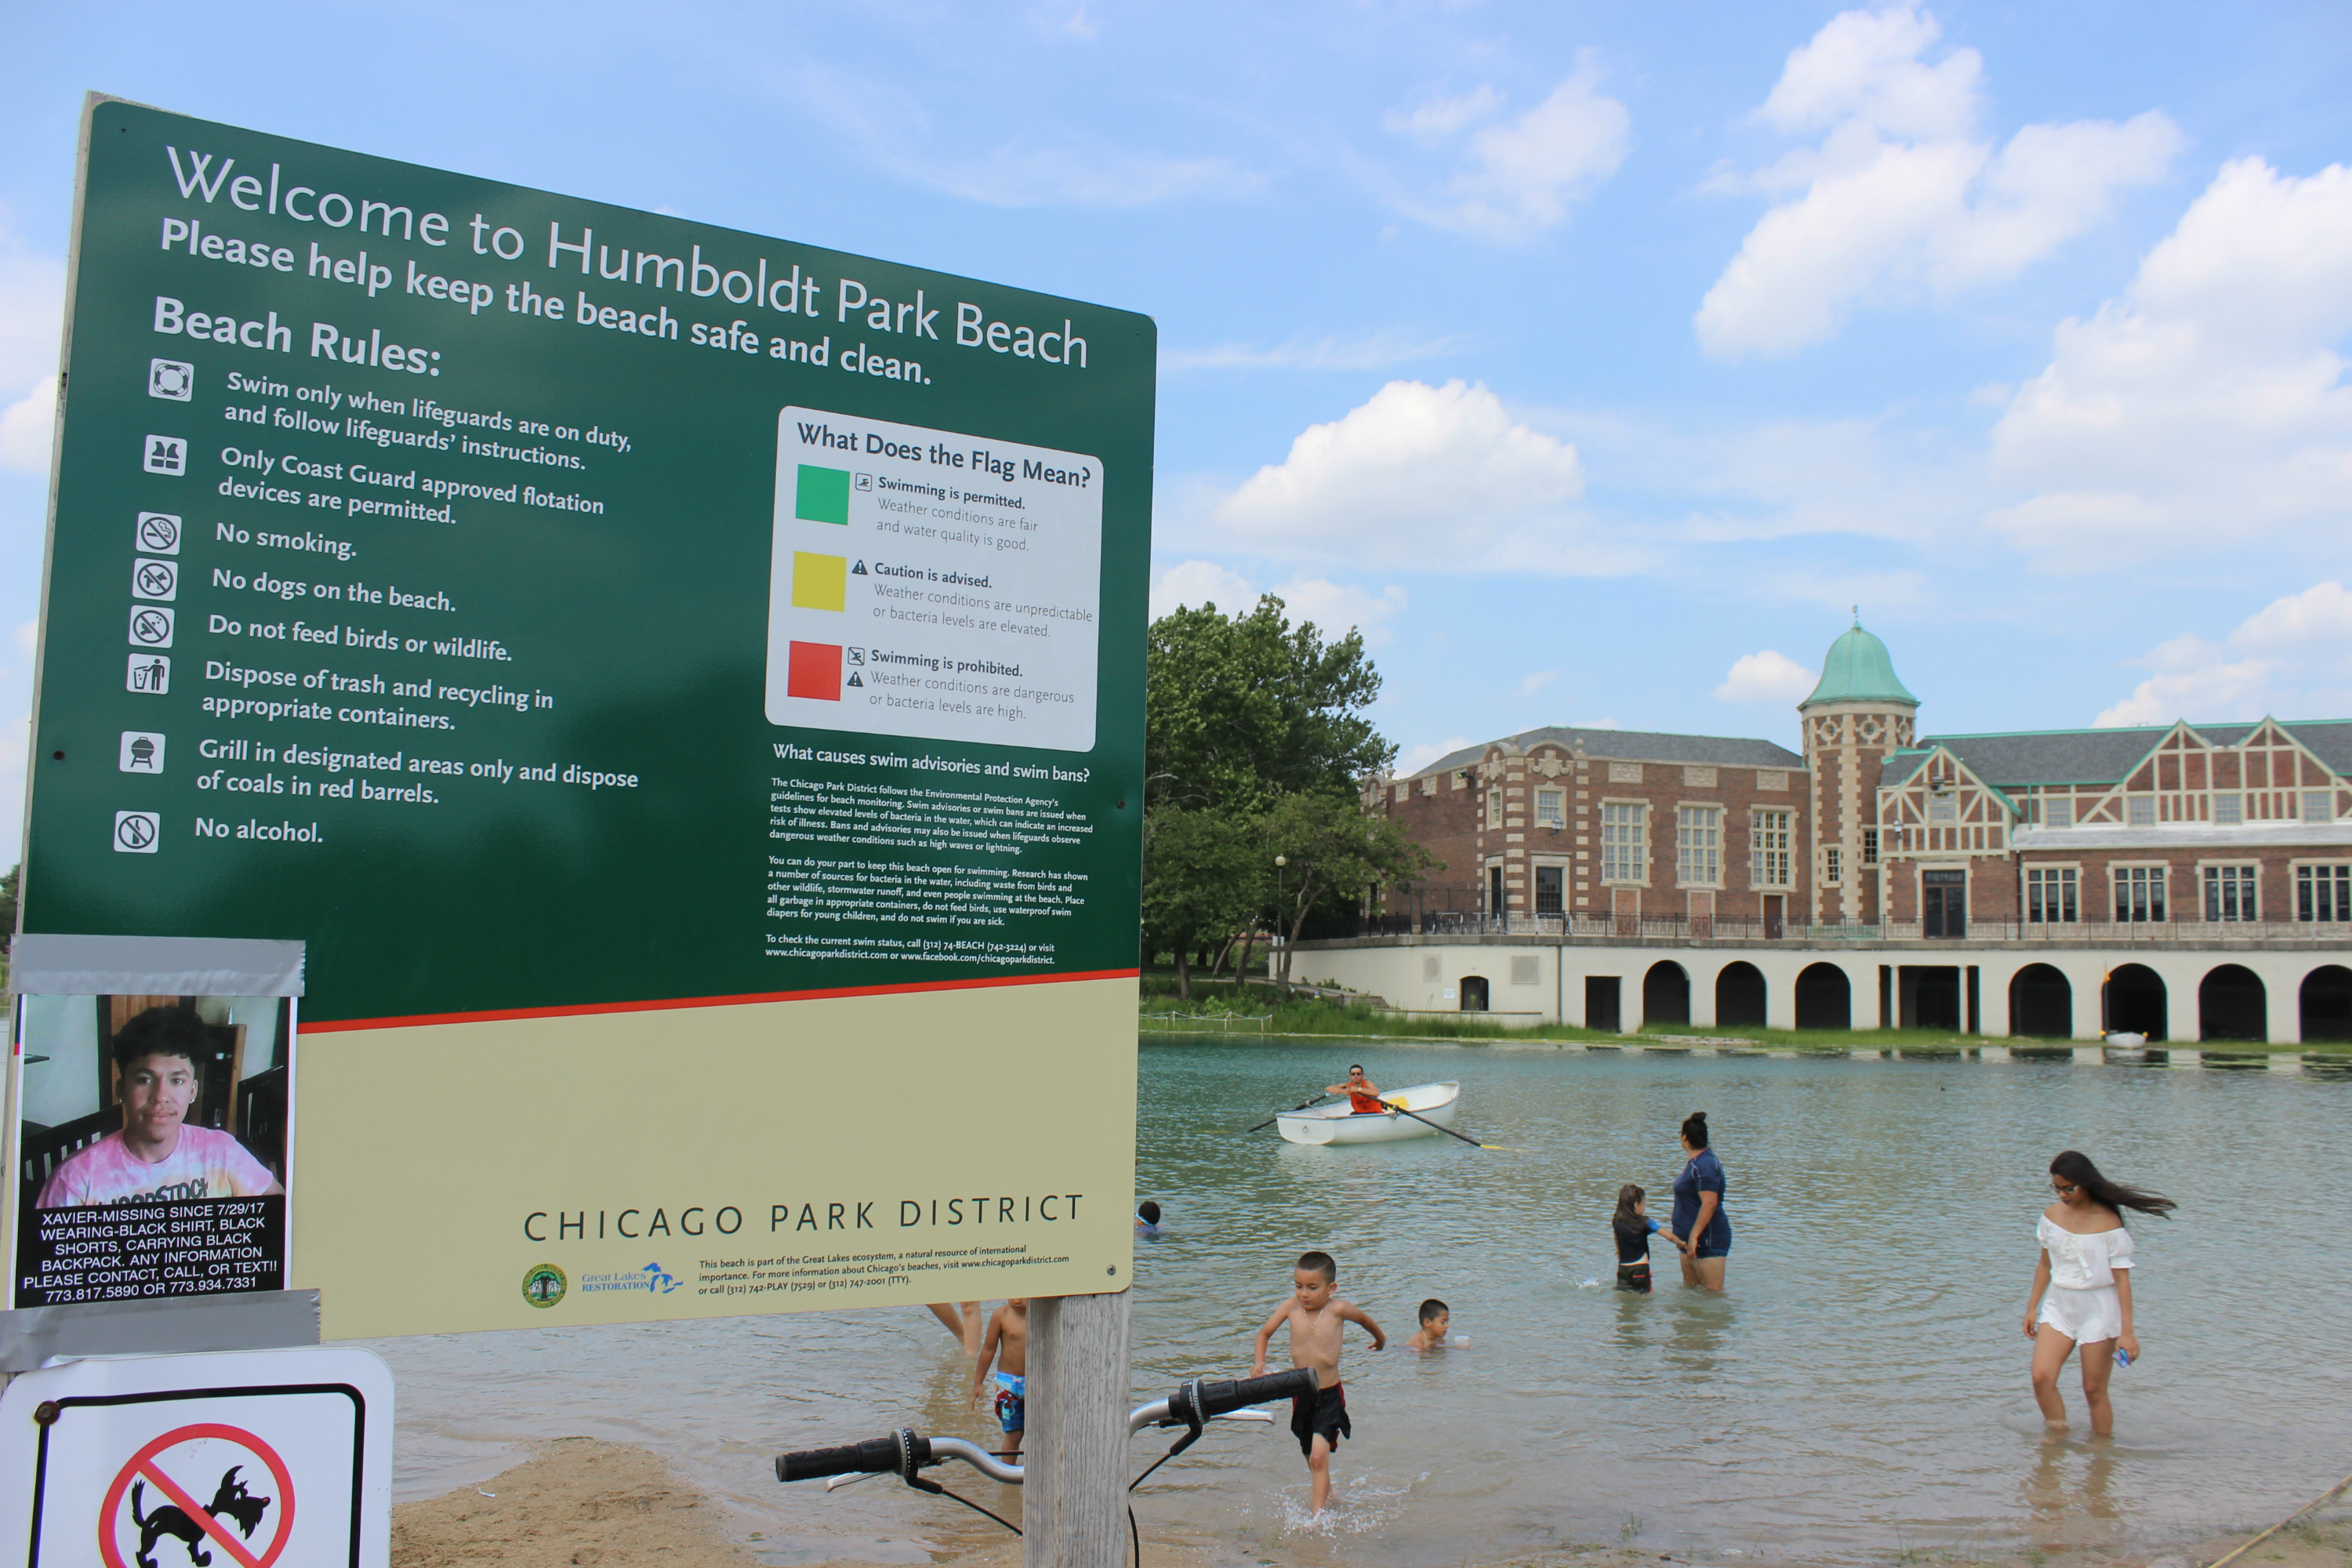 Check Out The Bacteria Levels At Your Favorite Beach - Humboldt Park